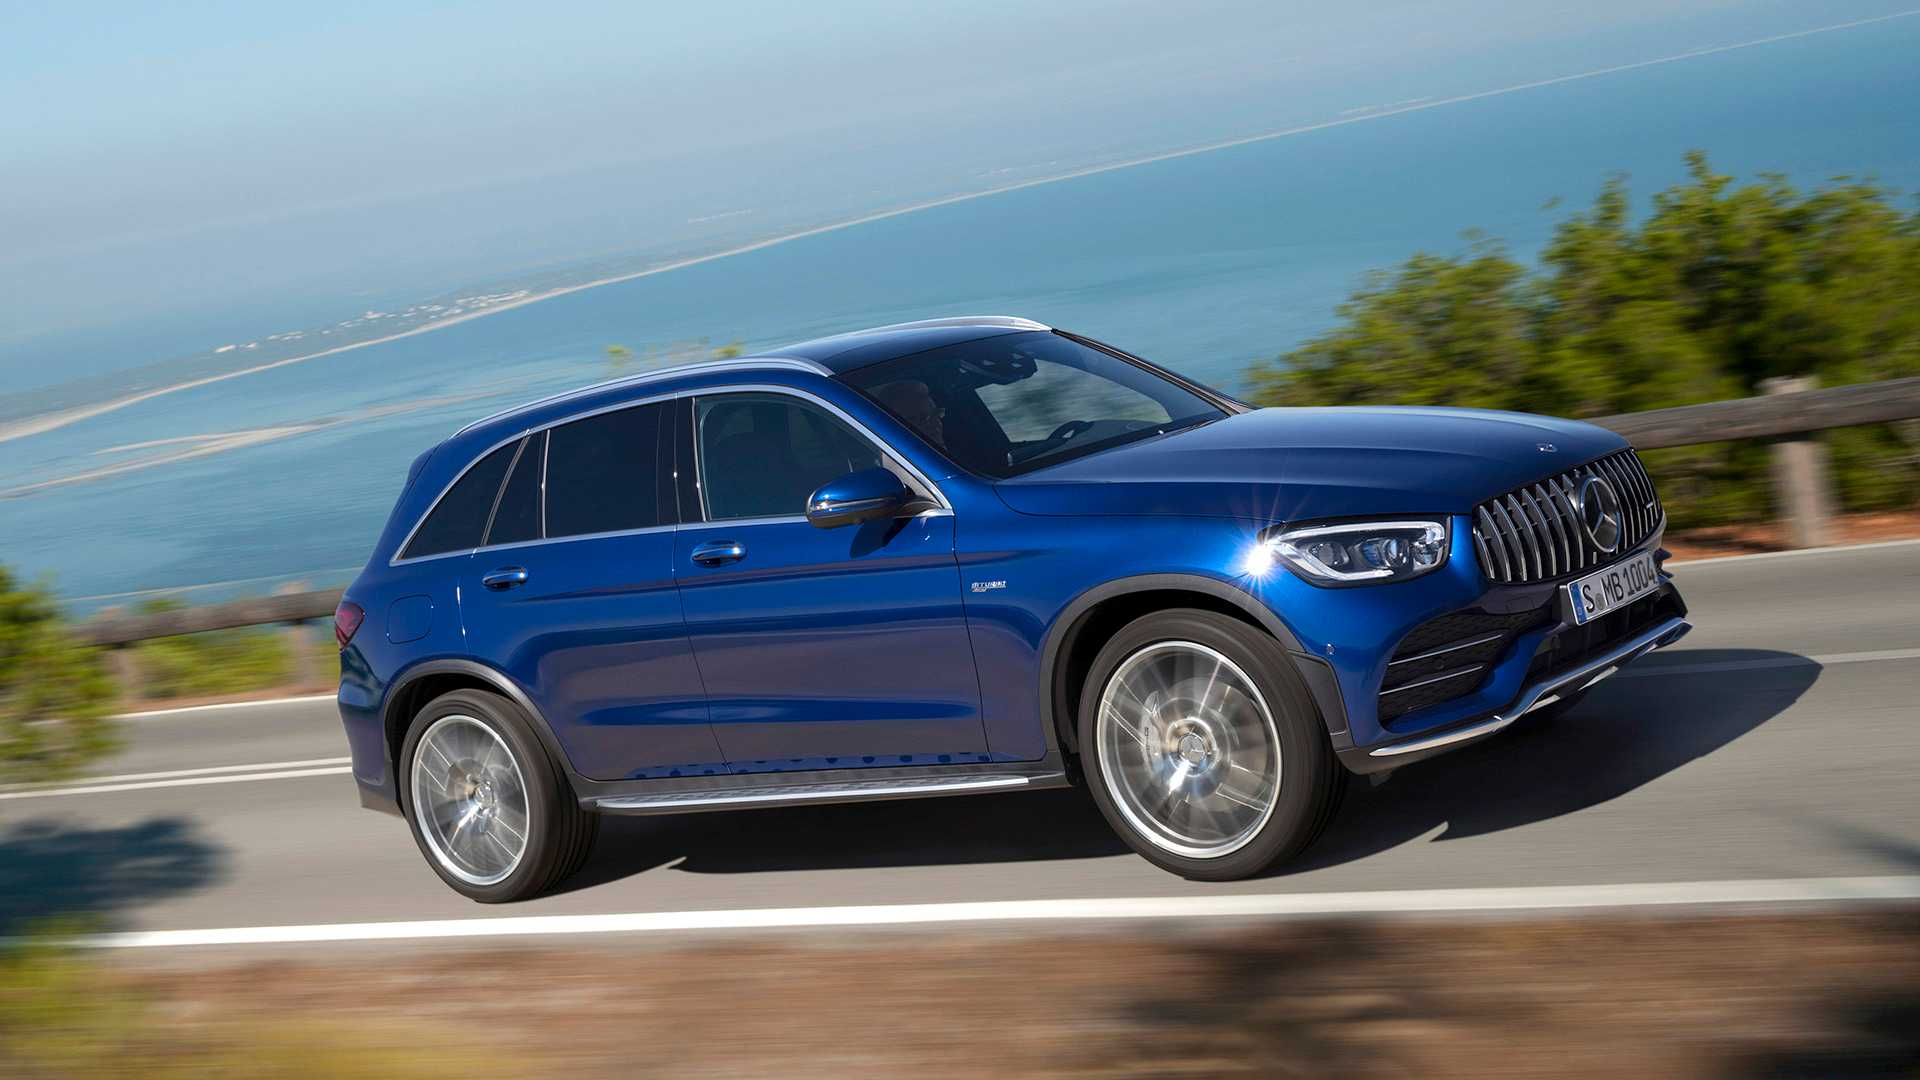 2020 Mercedes-AMG GLC 43 4MATIC Front Three-Quarter Wallpapers (2)